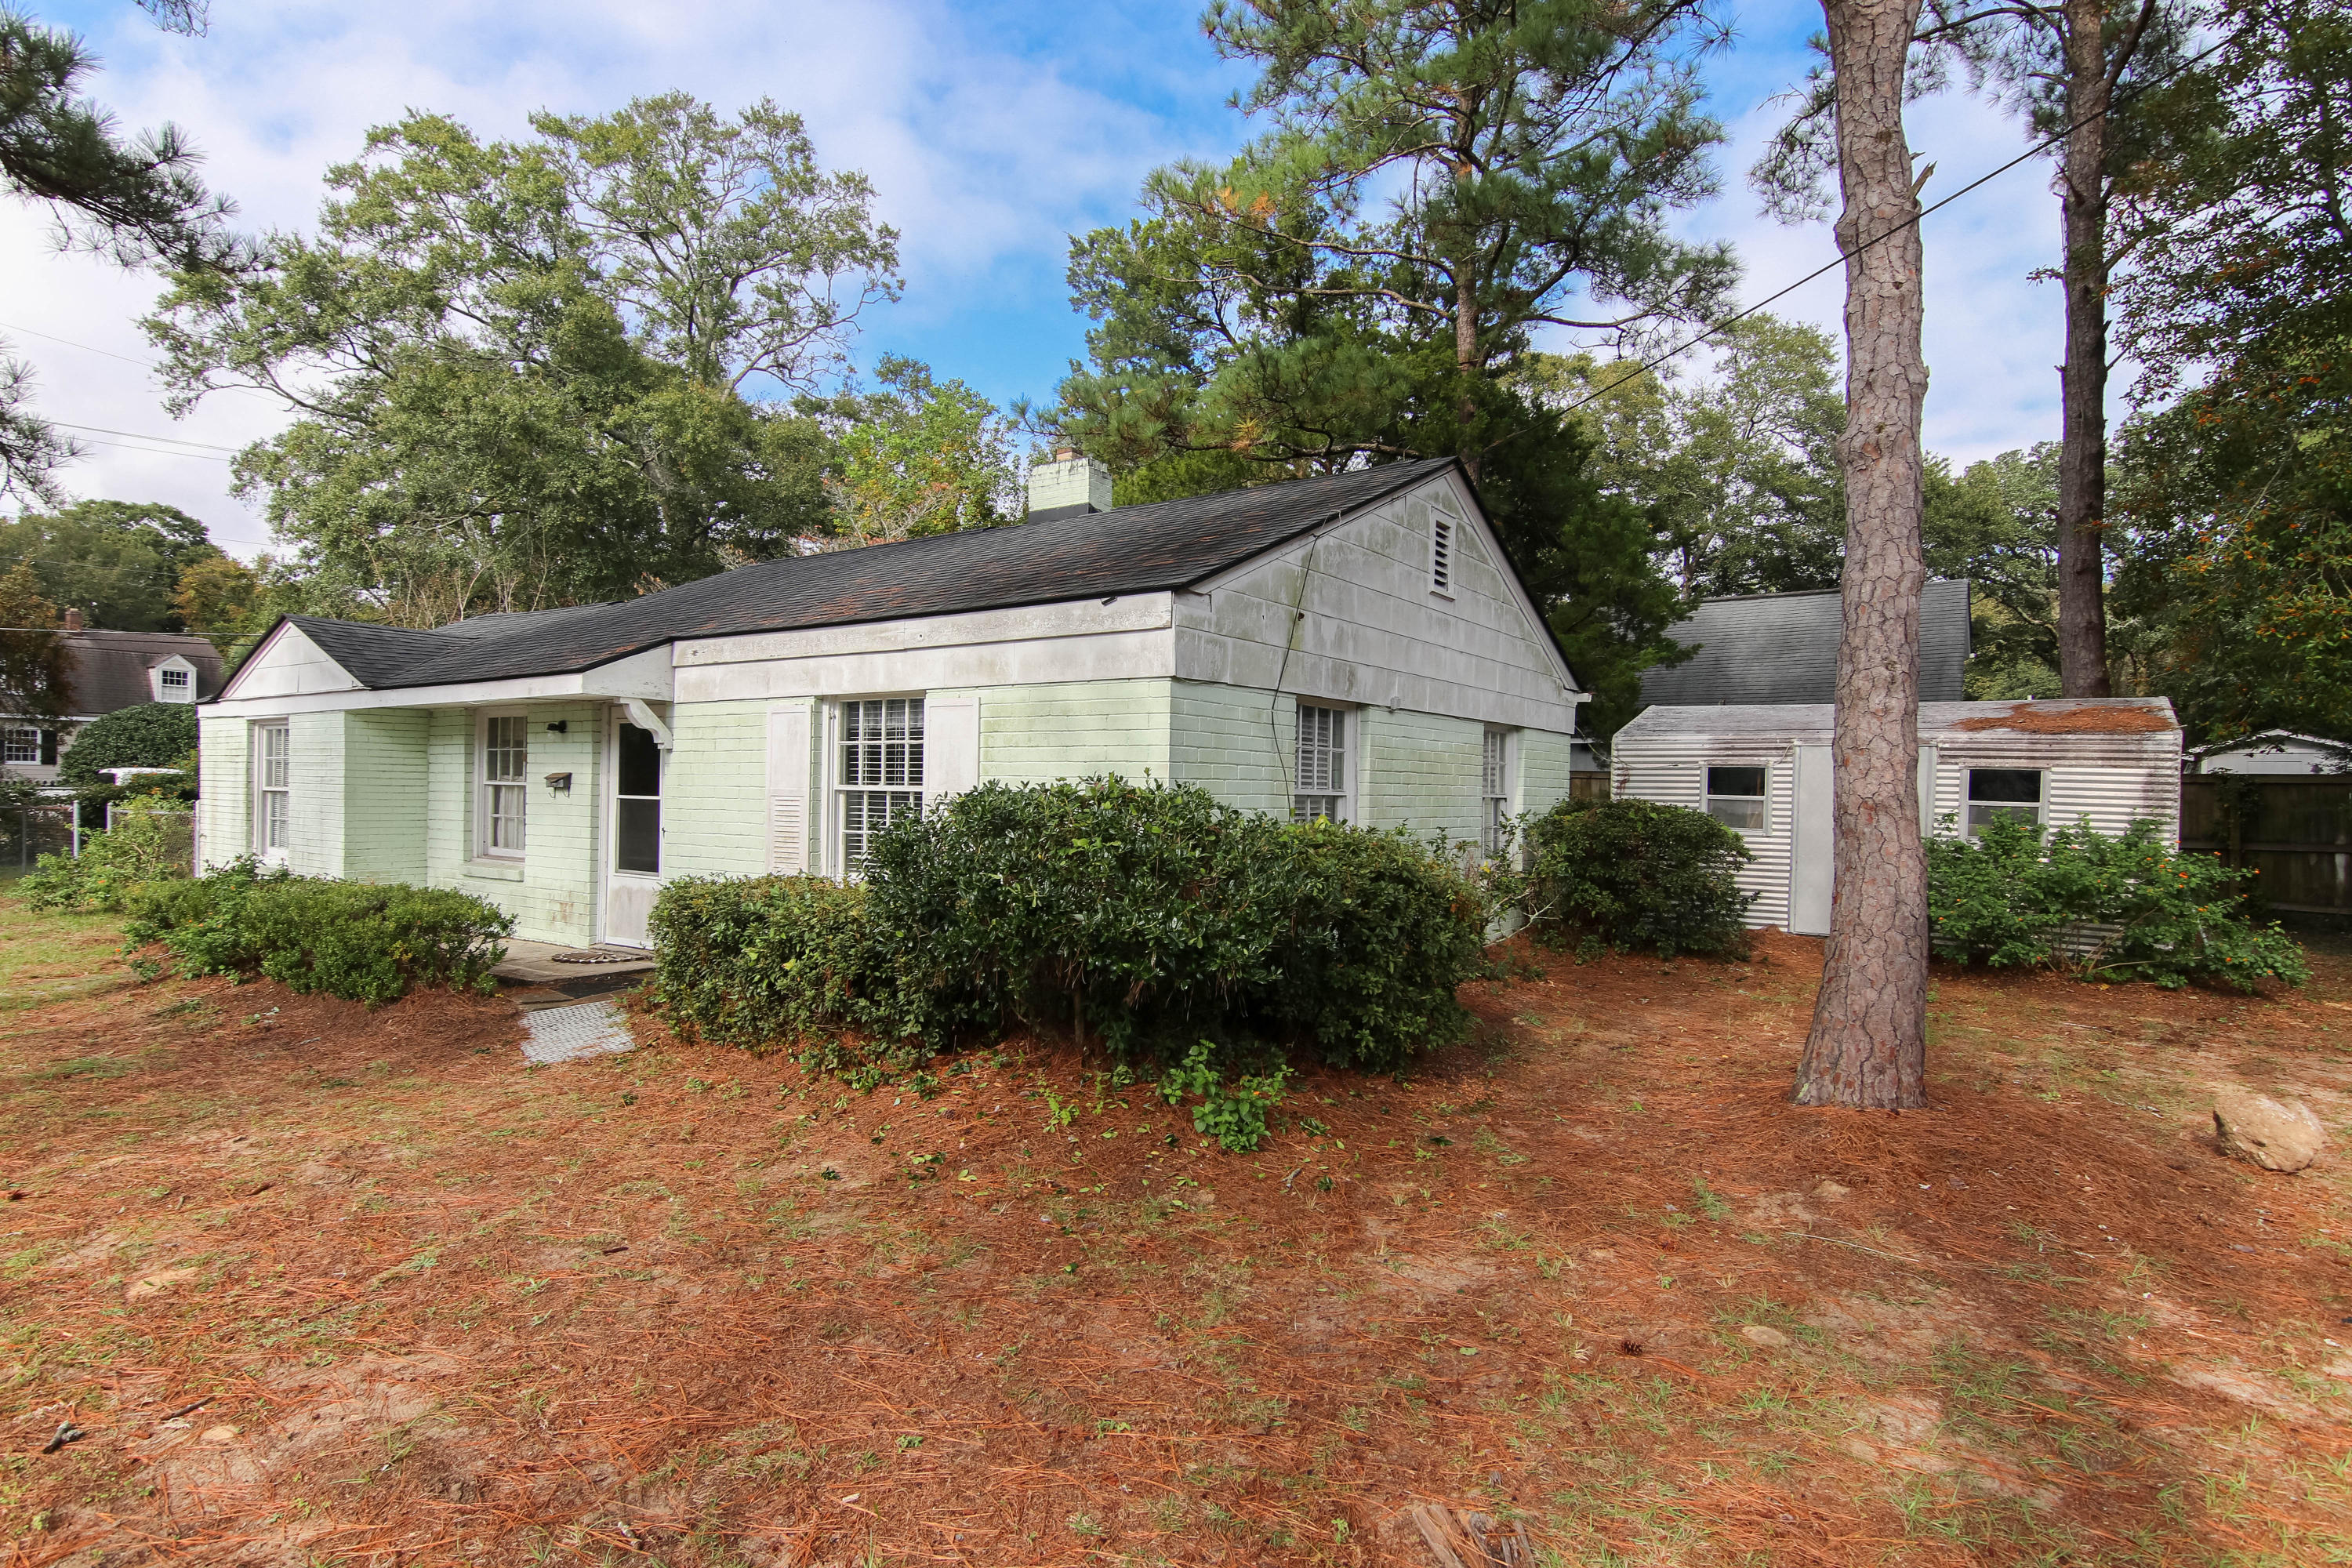 Old Mt Pleasant Homes For Sale - 1106 Simmons, Mount Pleasant, SC - 3